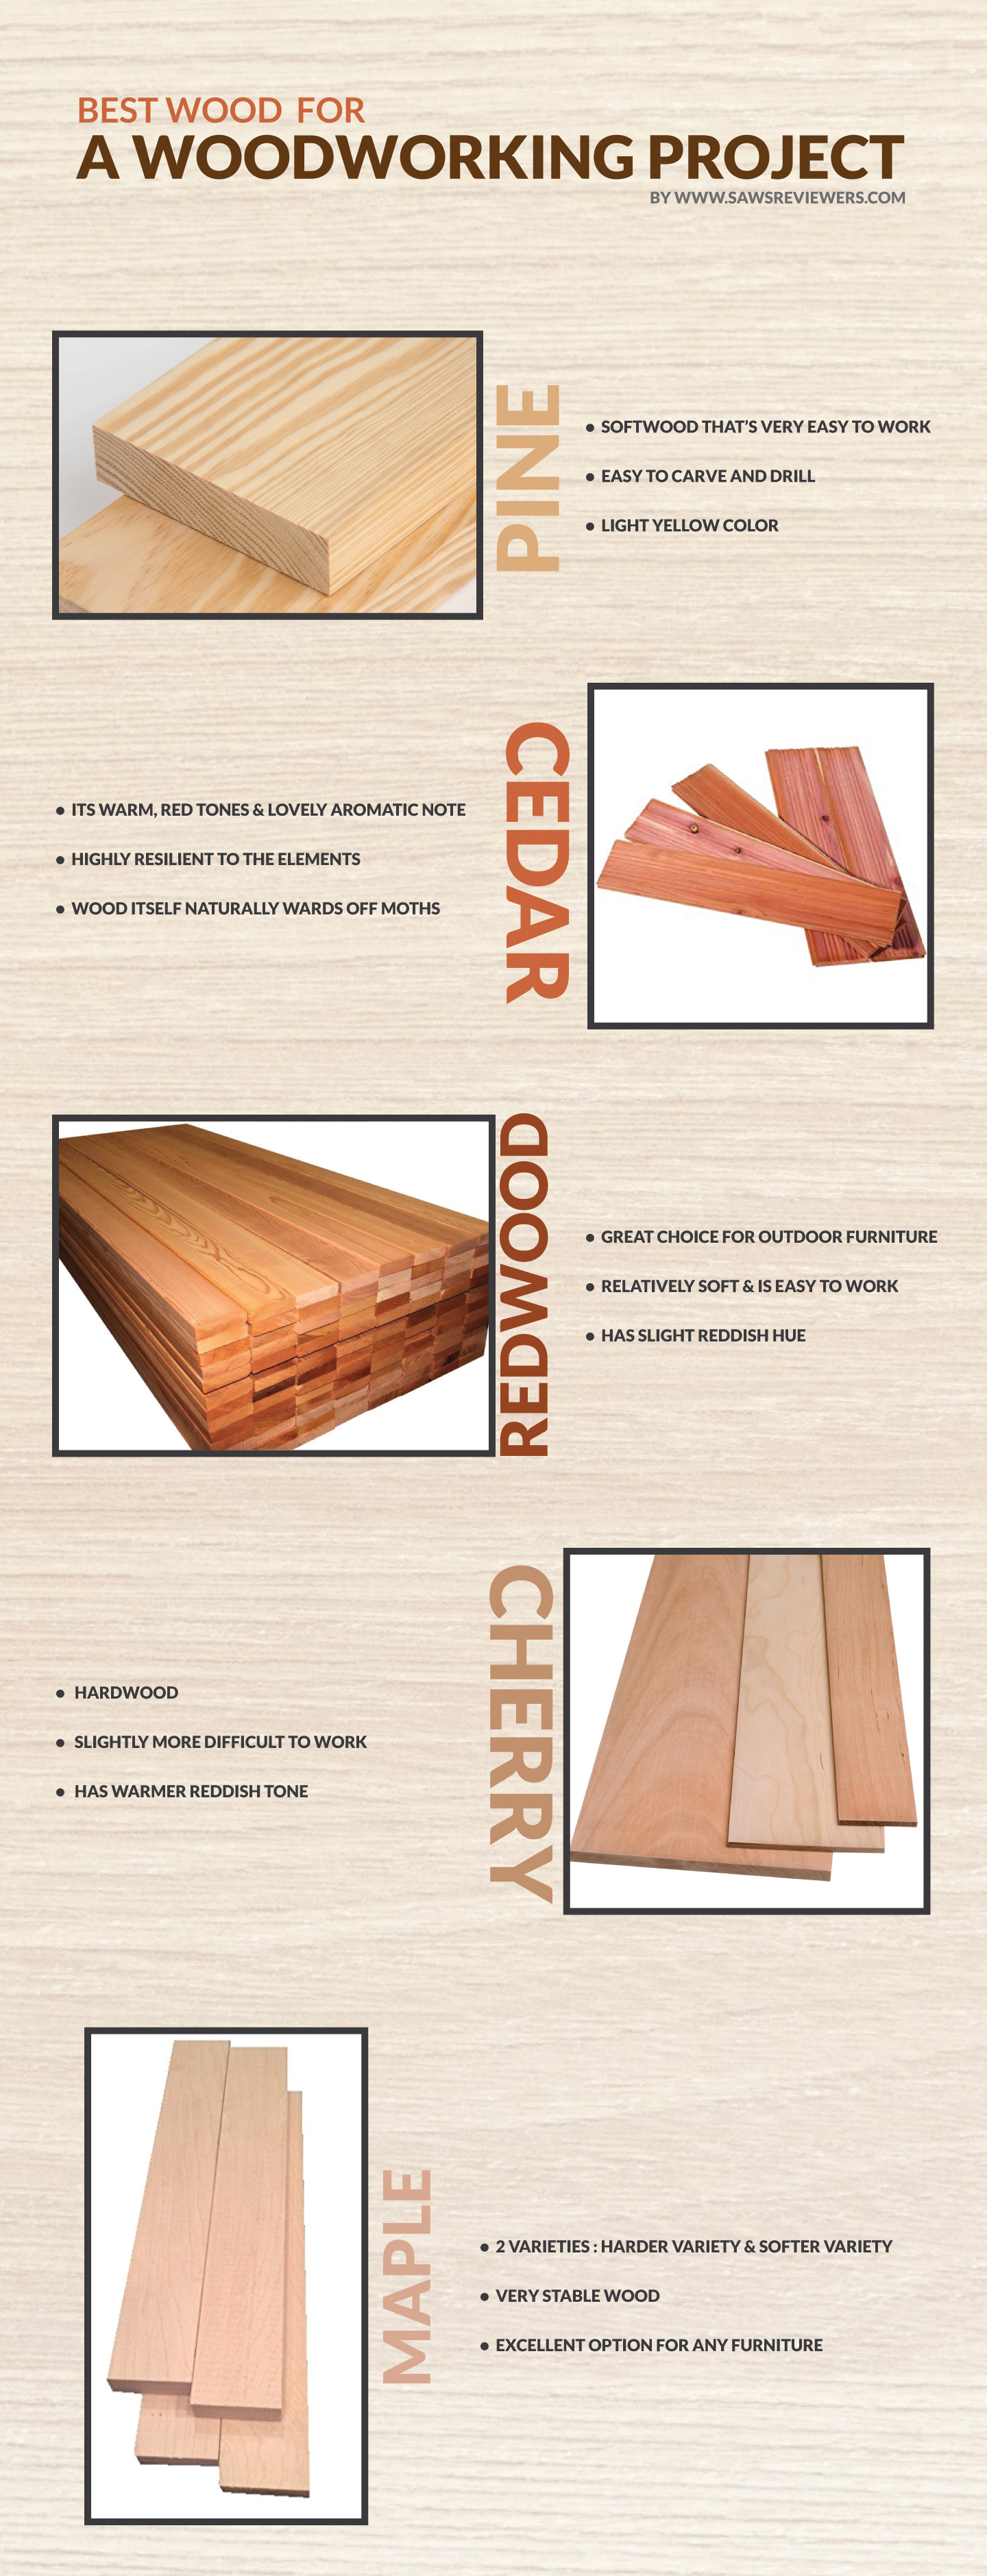 The Best Types of Wood for a Woodworking Project